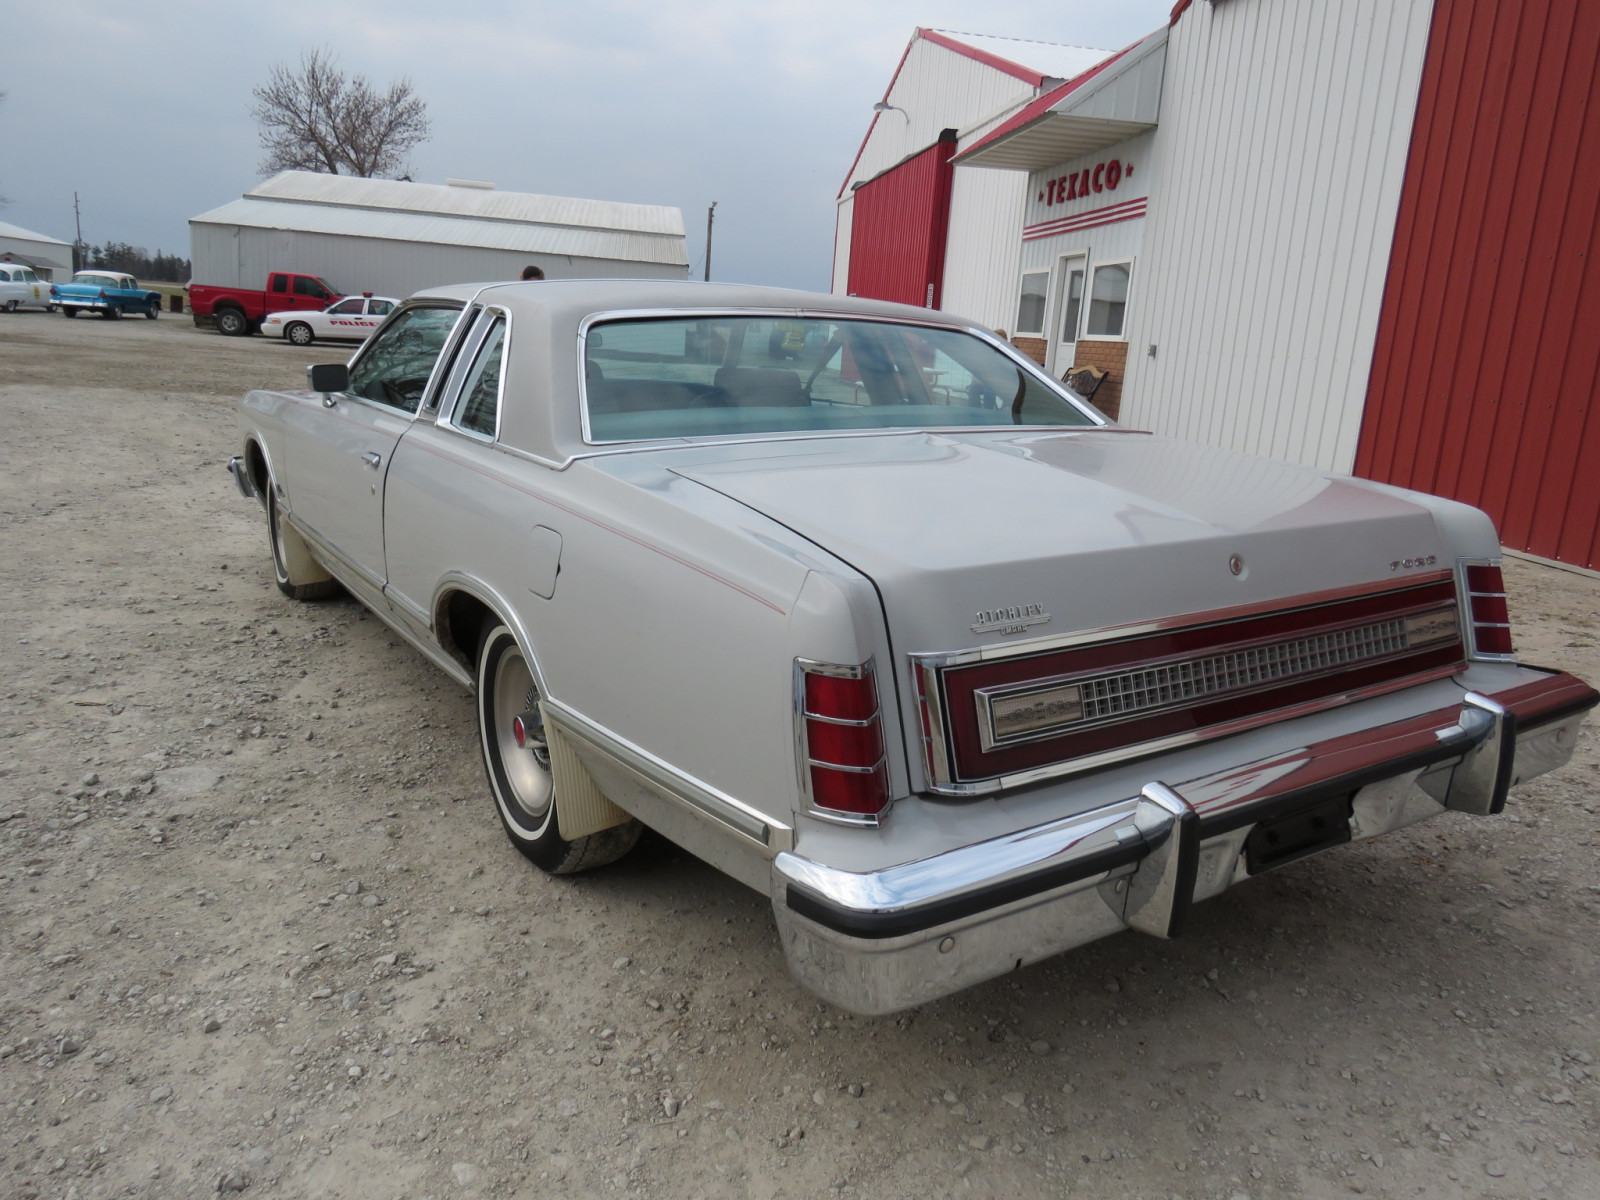 1977 Ford LTD Coupe - Image 7